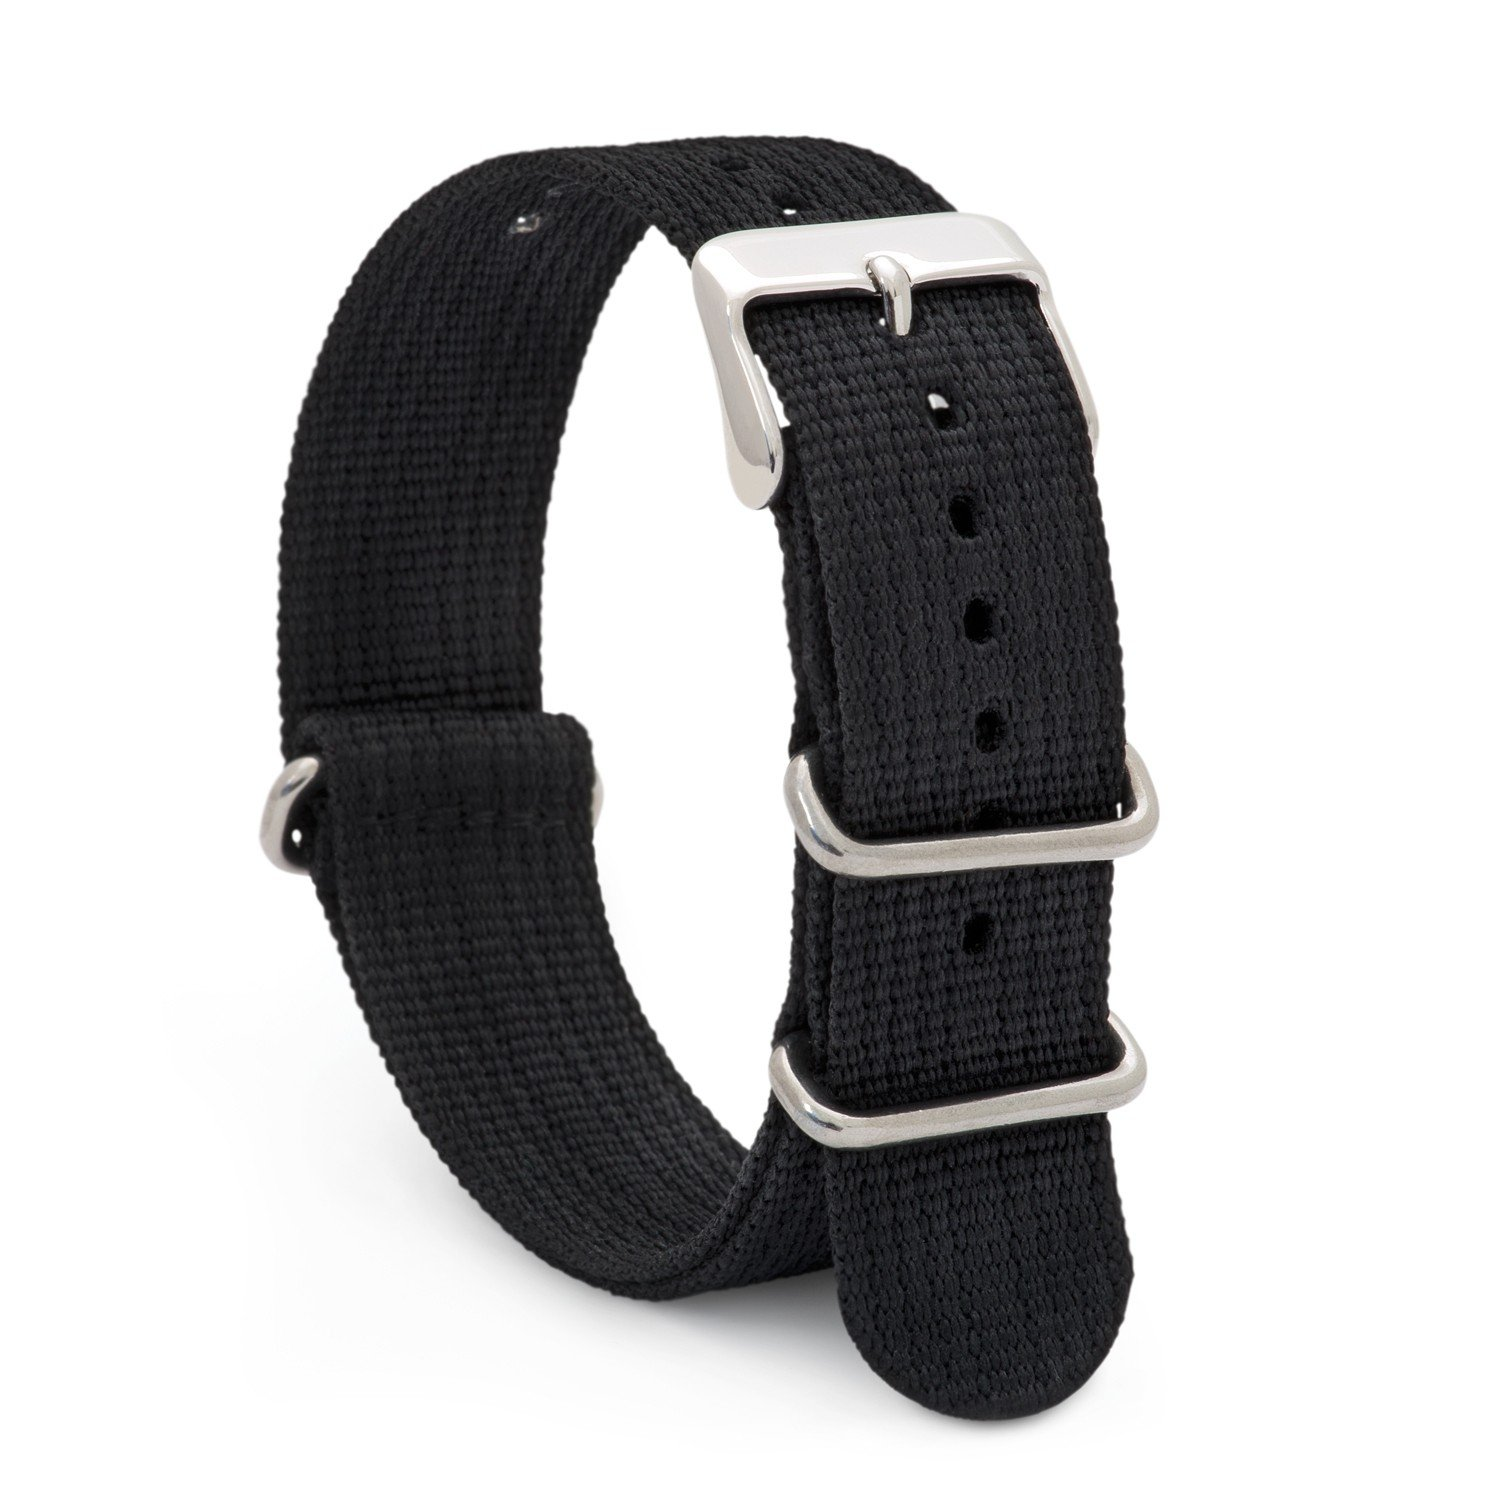 Speidel NATO Watch Band 20mm Black Woven Military Style Nylon Strap with Heavy Duty Stainless Steel Keepers and Buckle